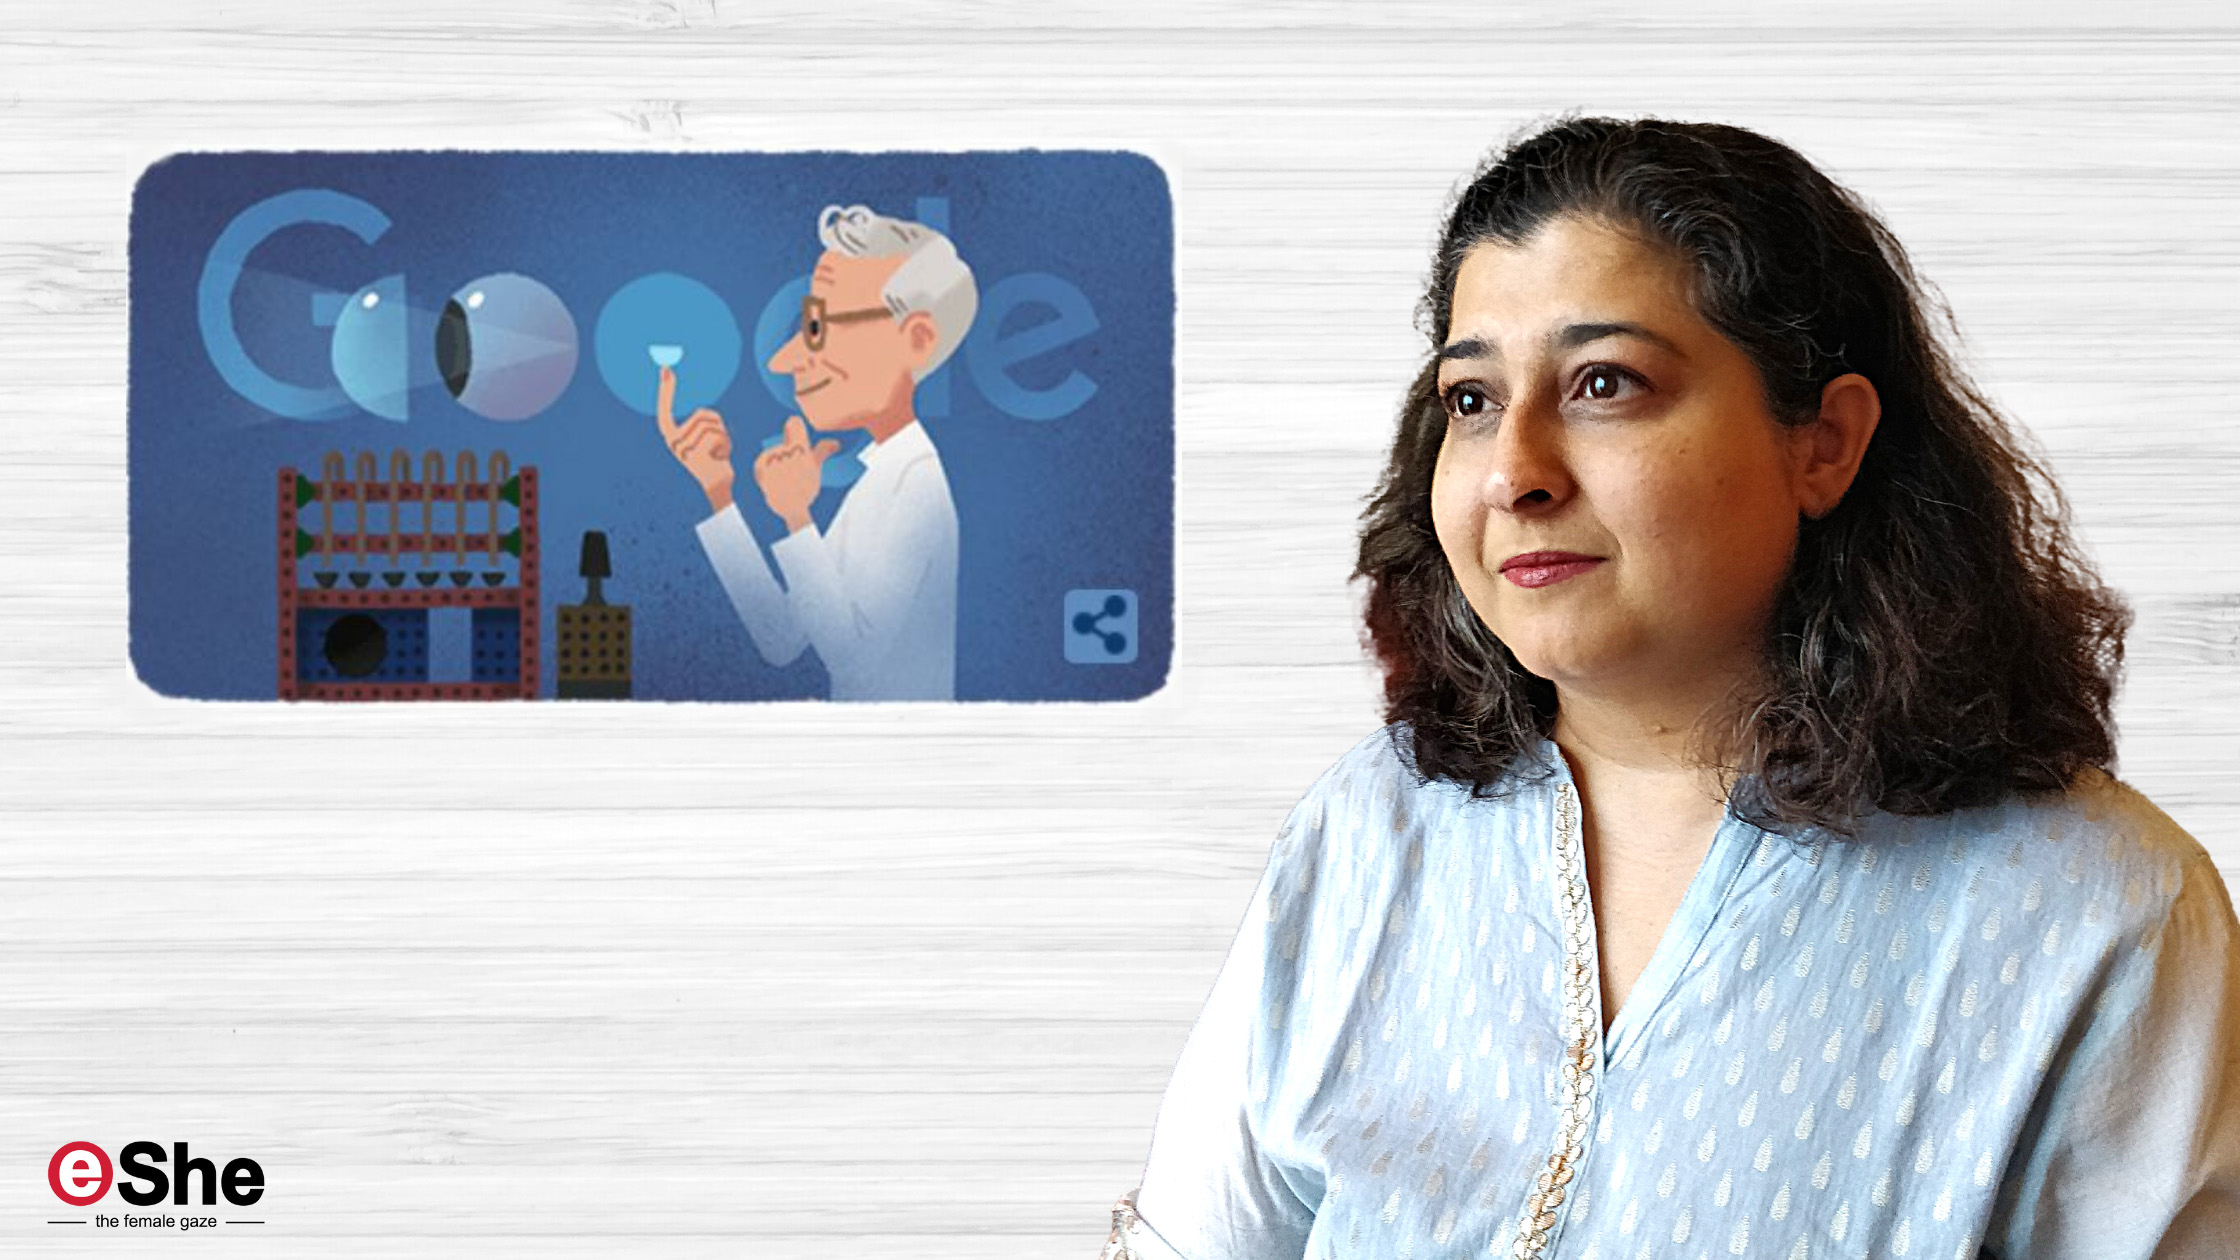 Dwelling on a Google doodle and coming to terms with vision loss